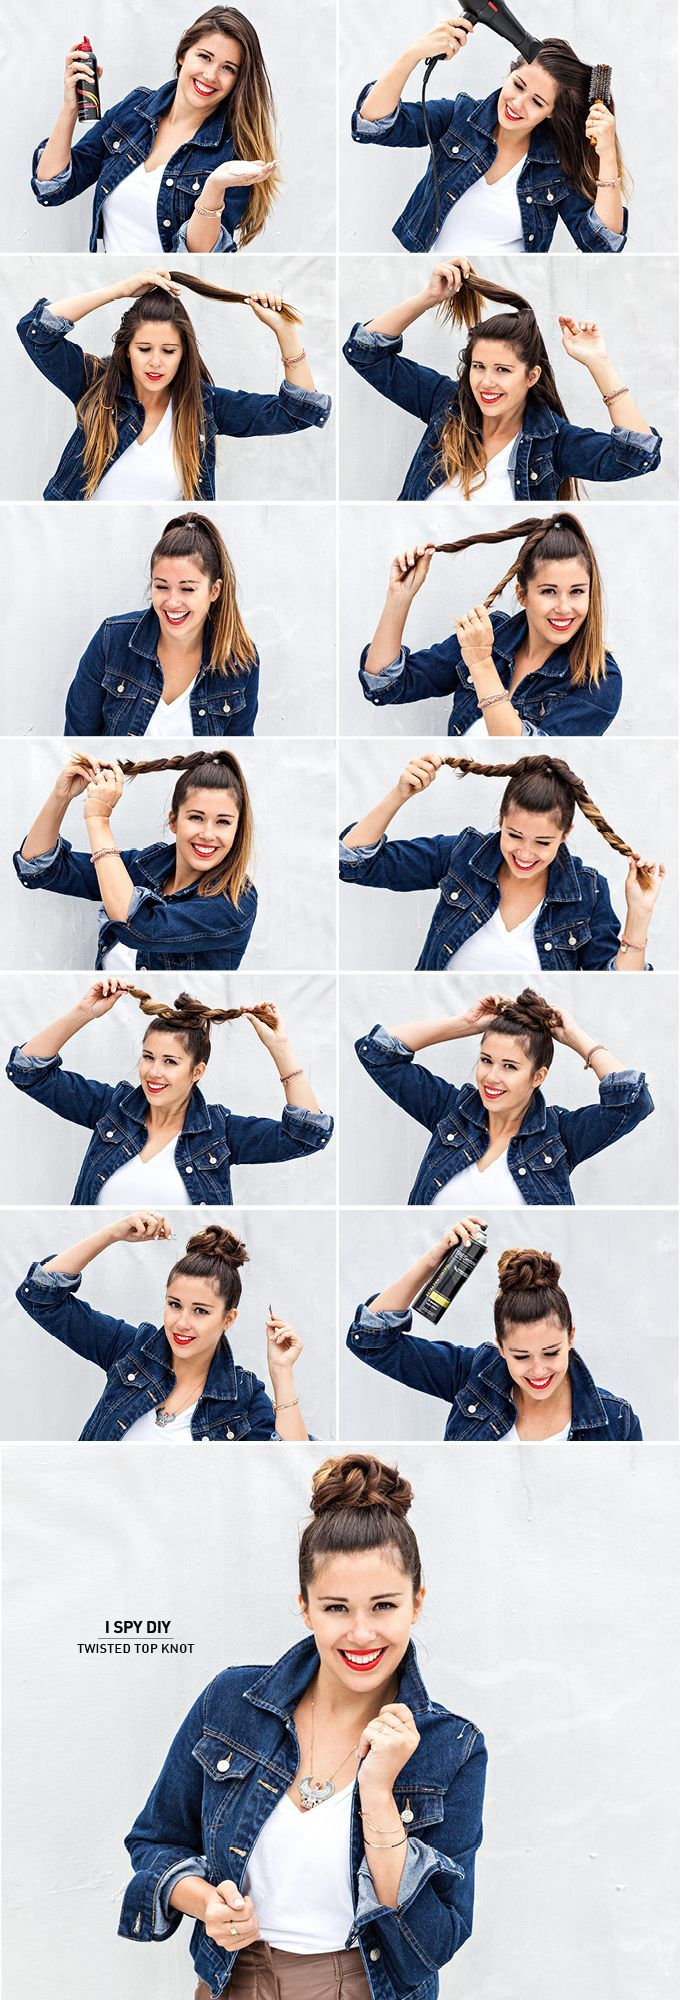 ASK THE EXPERT | Twisted Top Knot | I SPY DIY